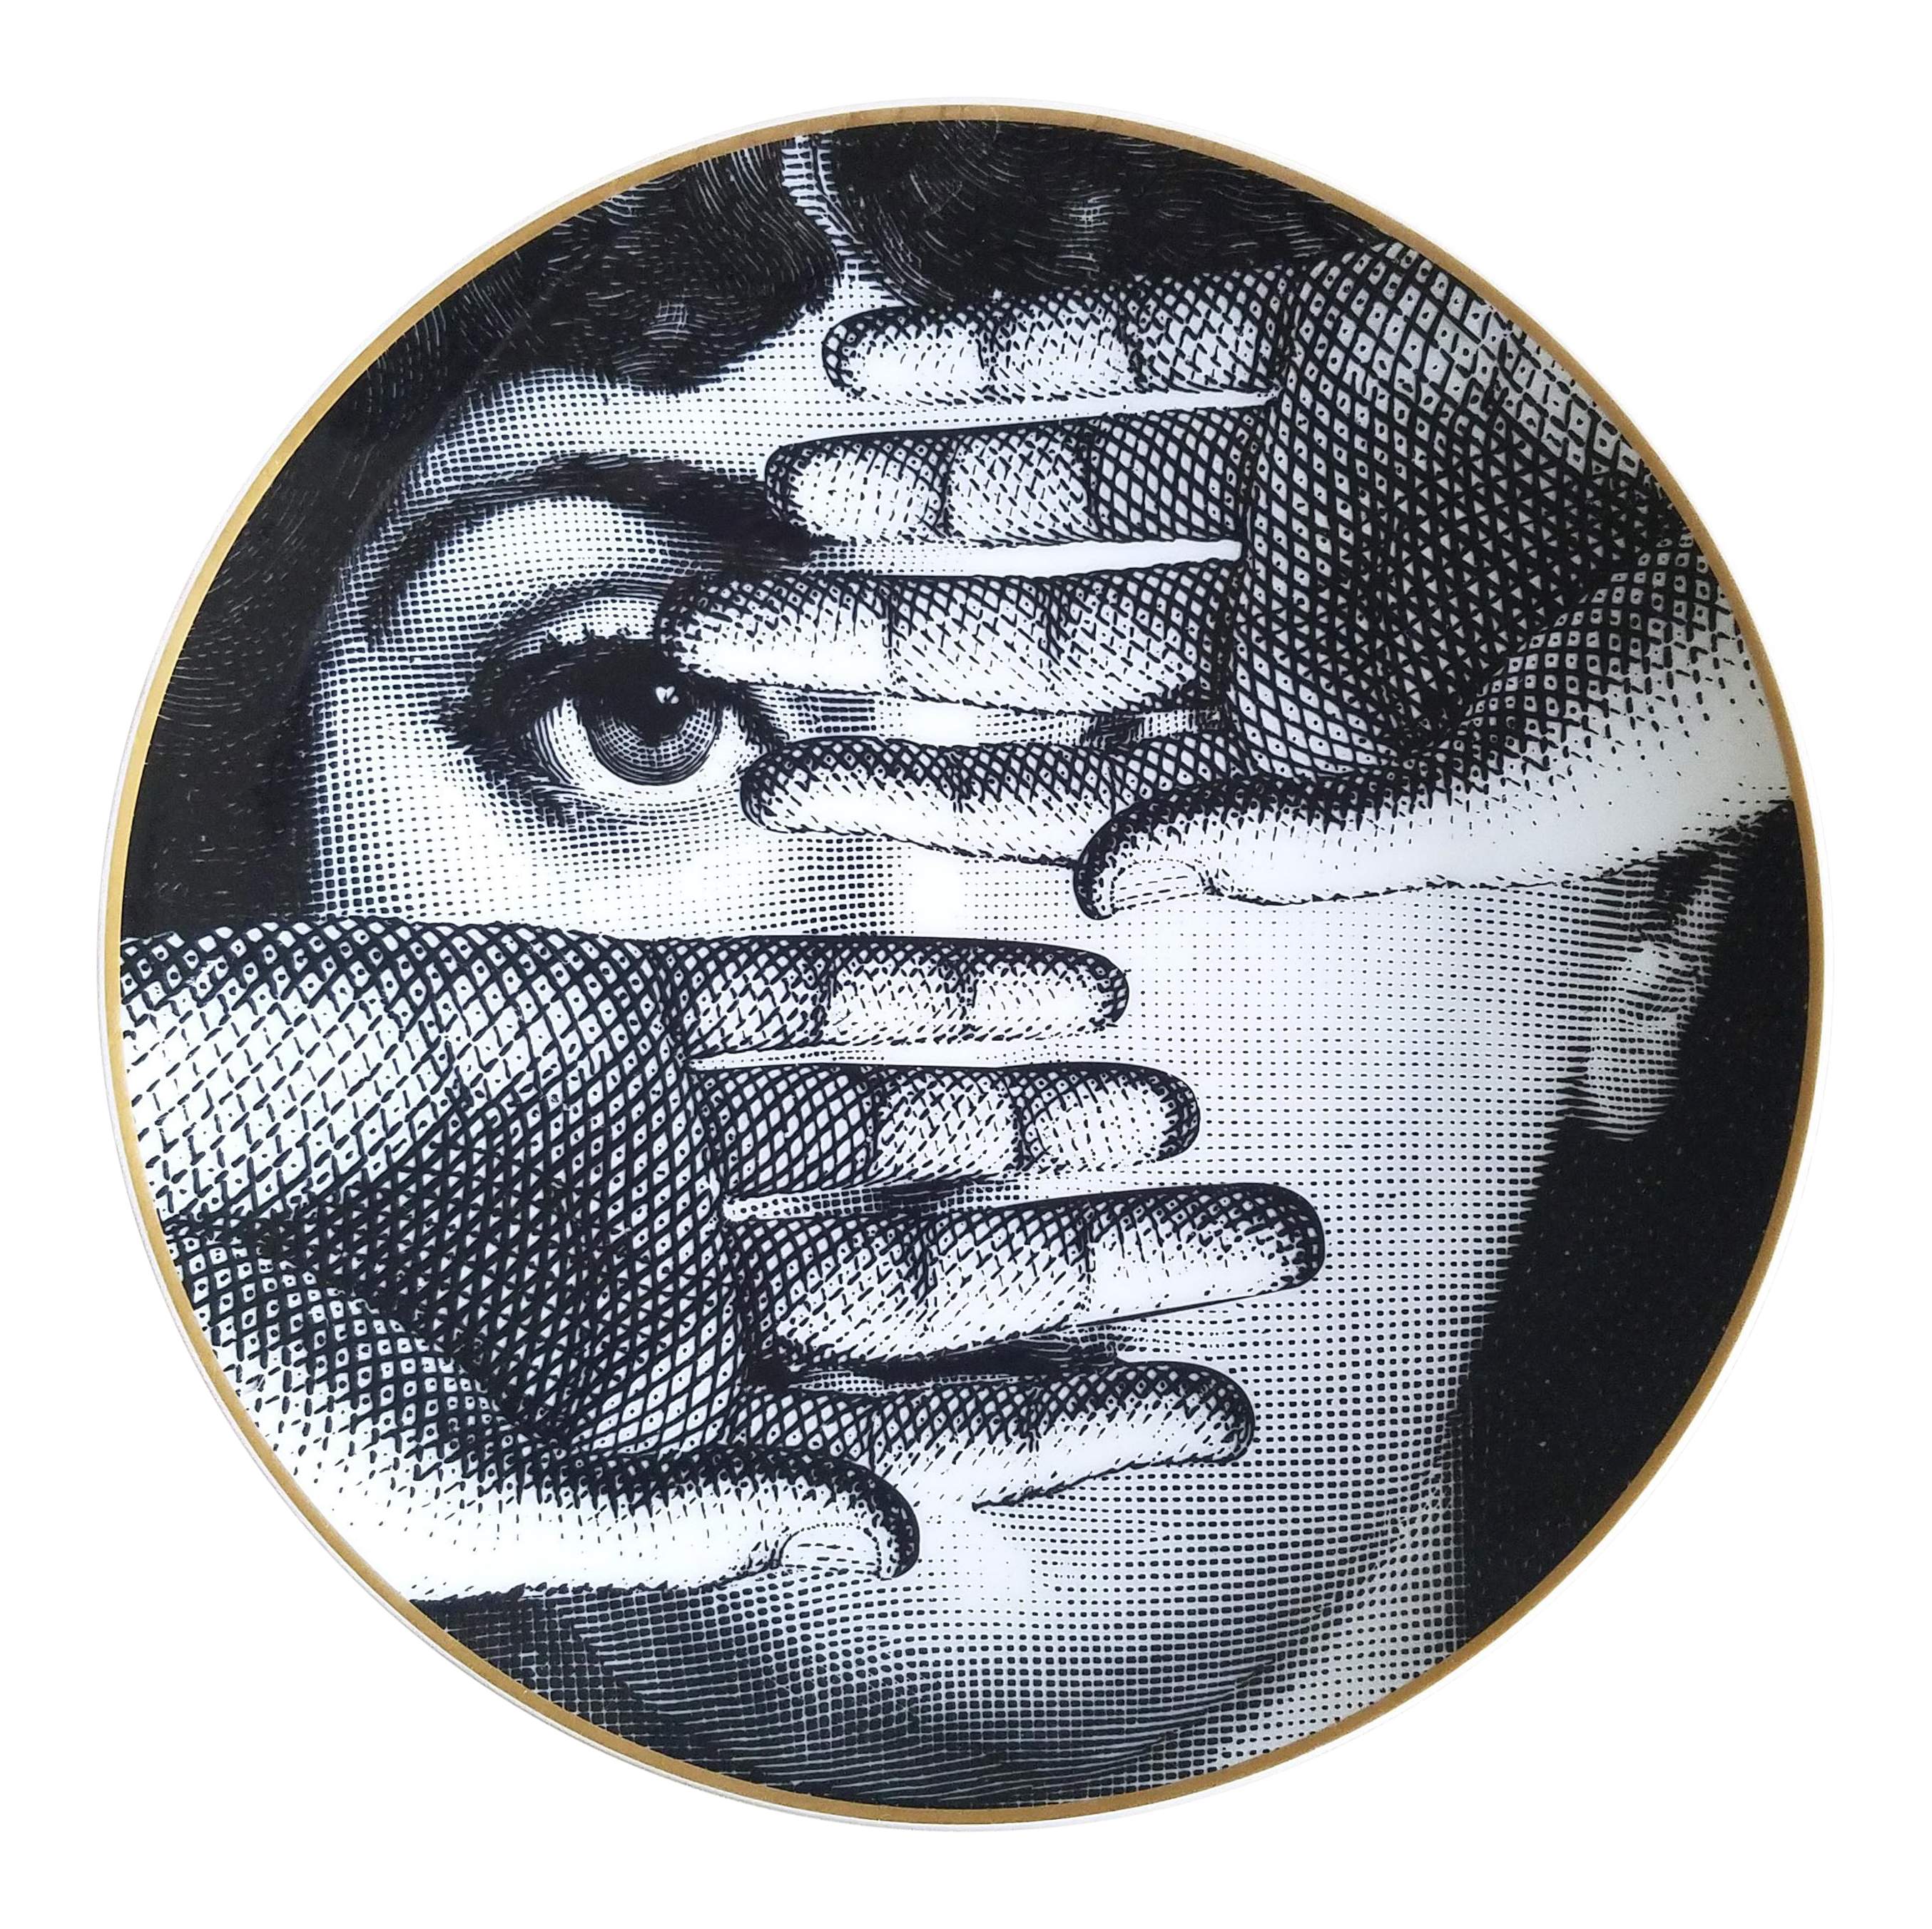 Vintage Fornasetti Porcelain Plate for Rosenthal | Chairish